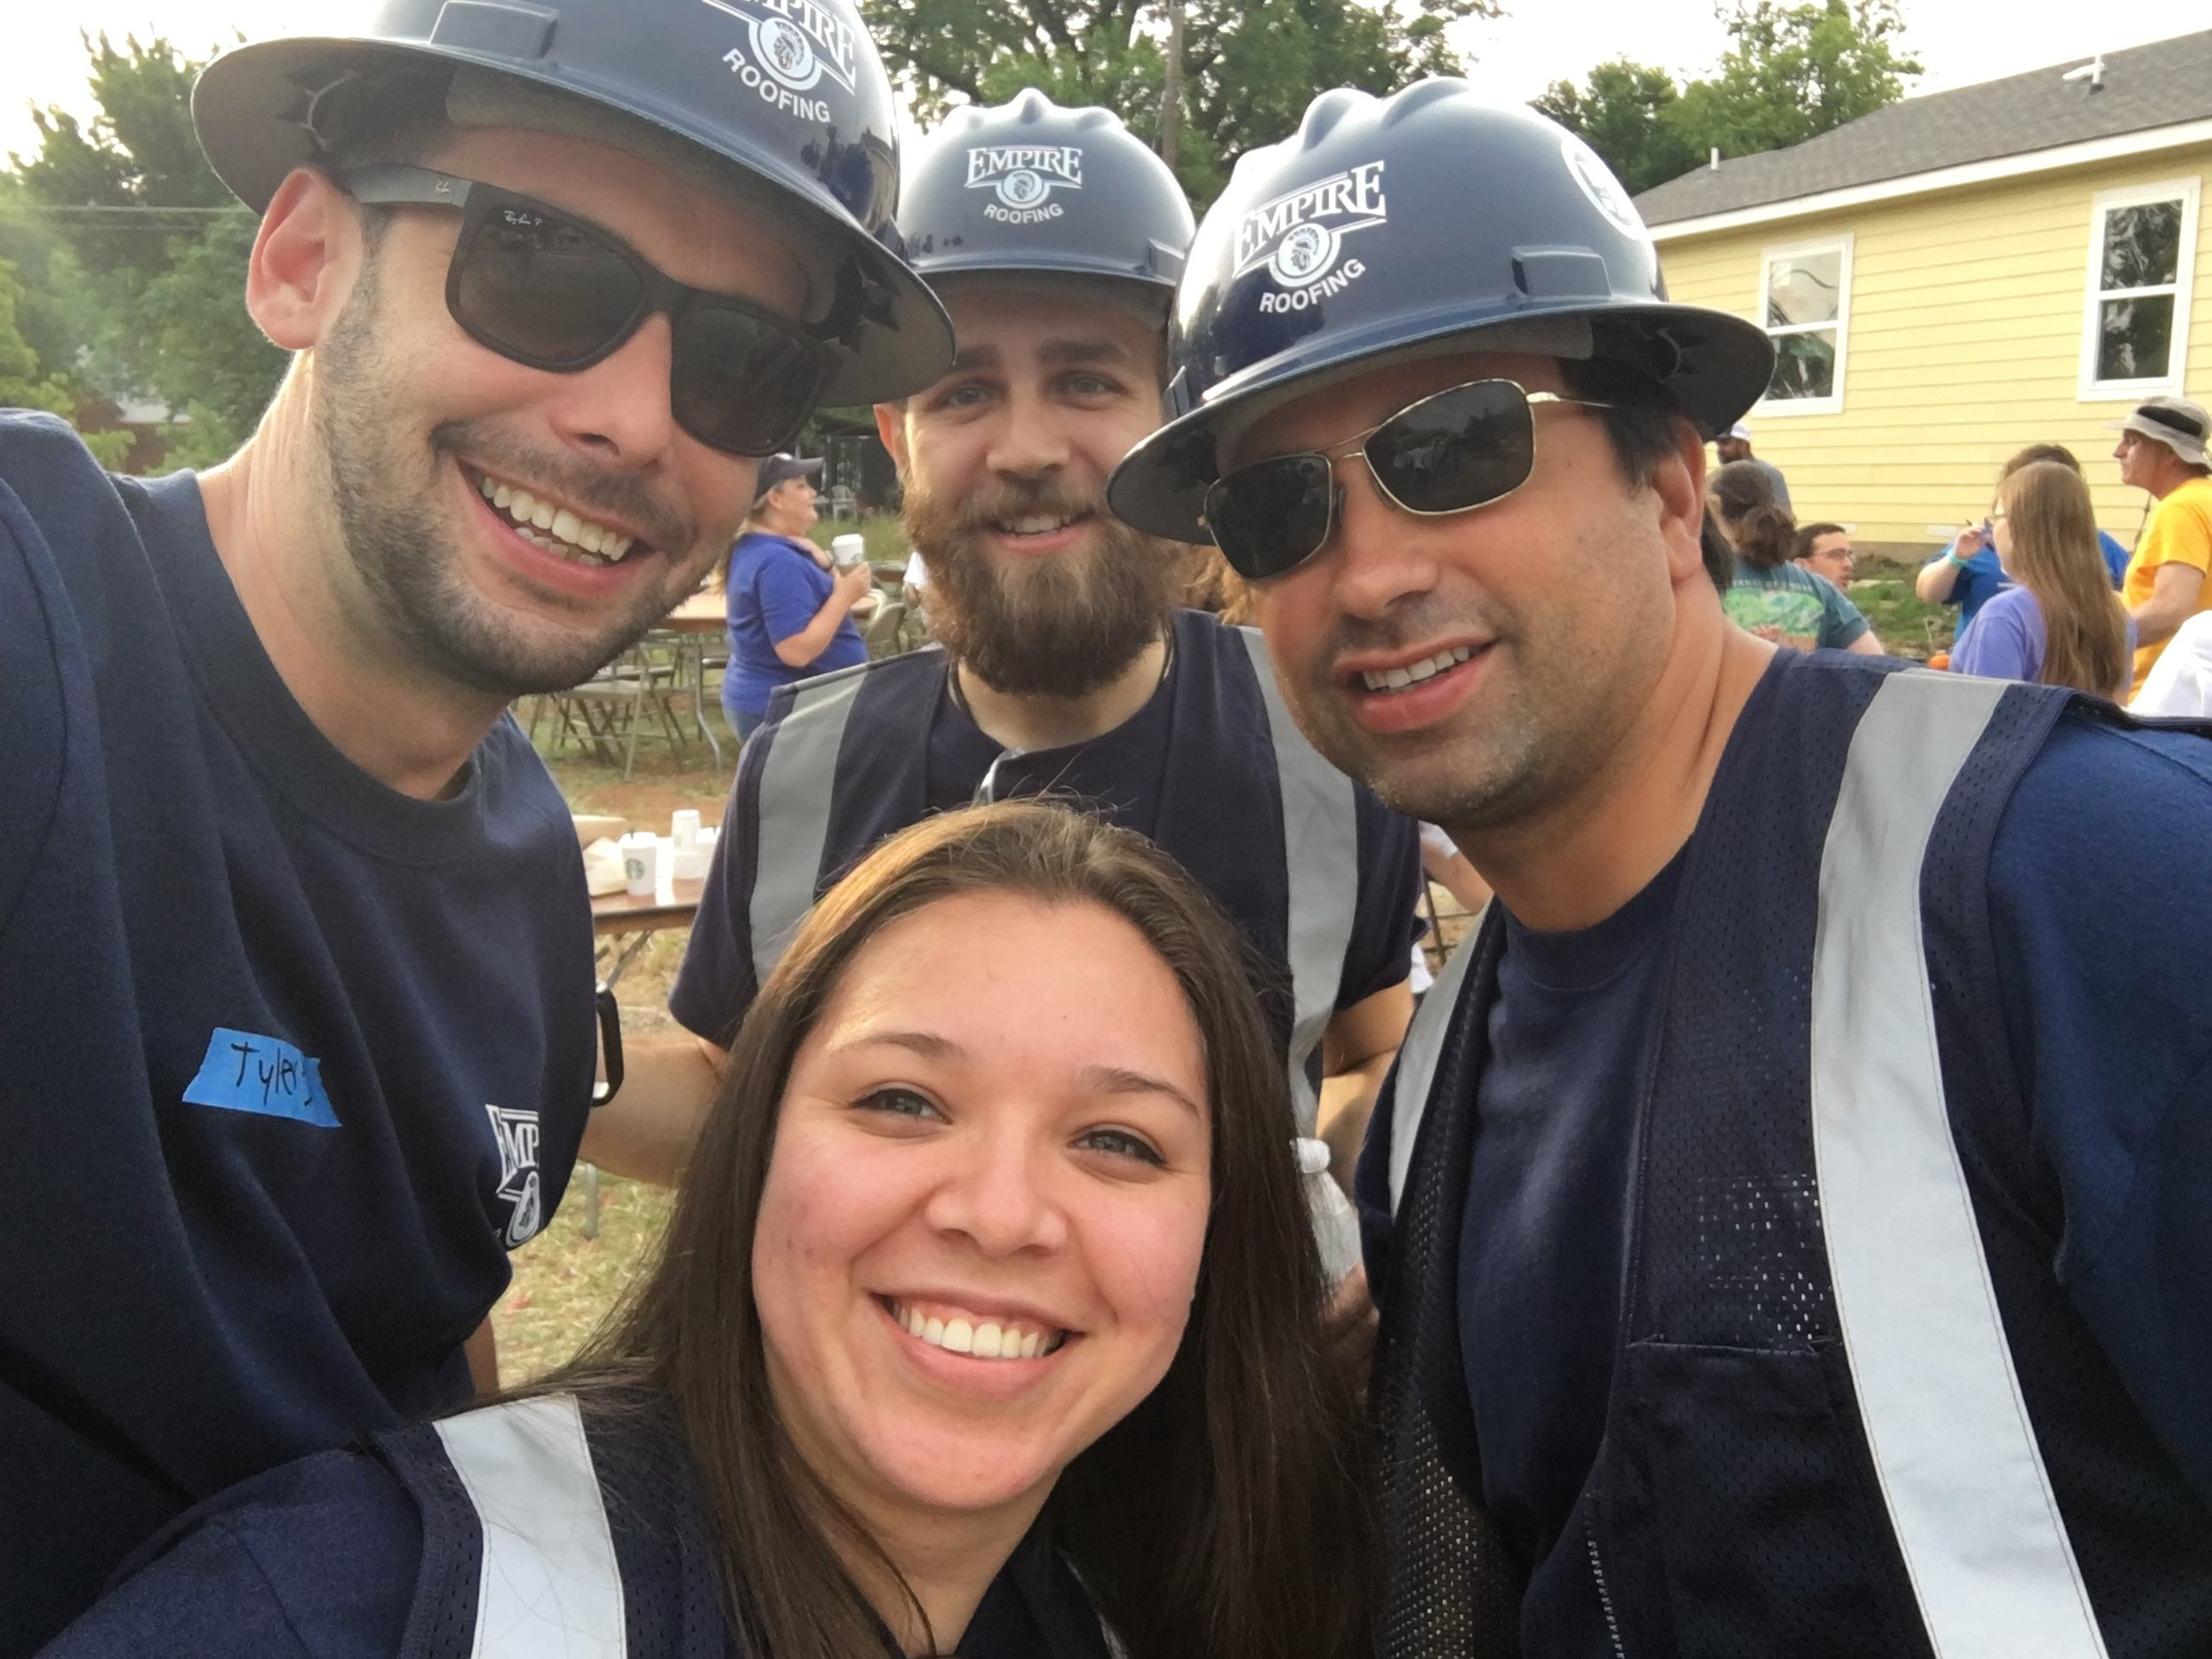 Habitat for Humanity - Empire Roofing